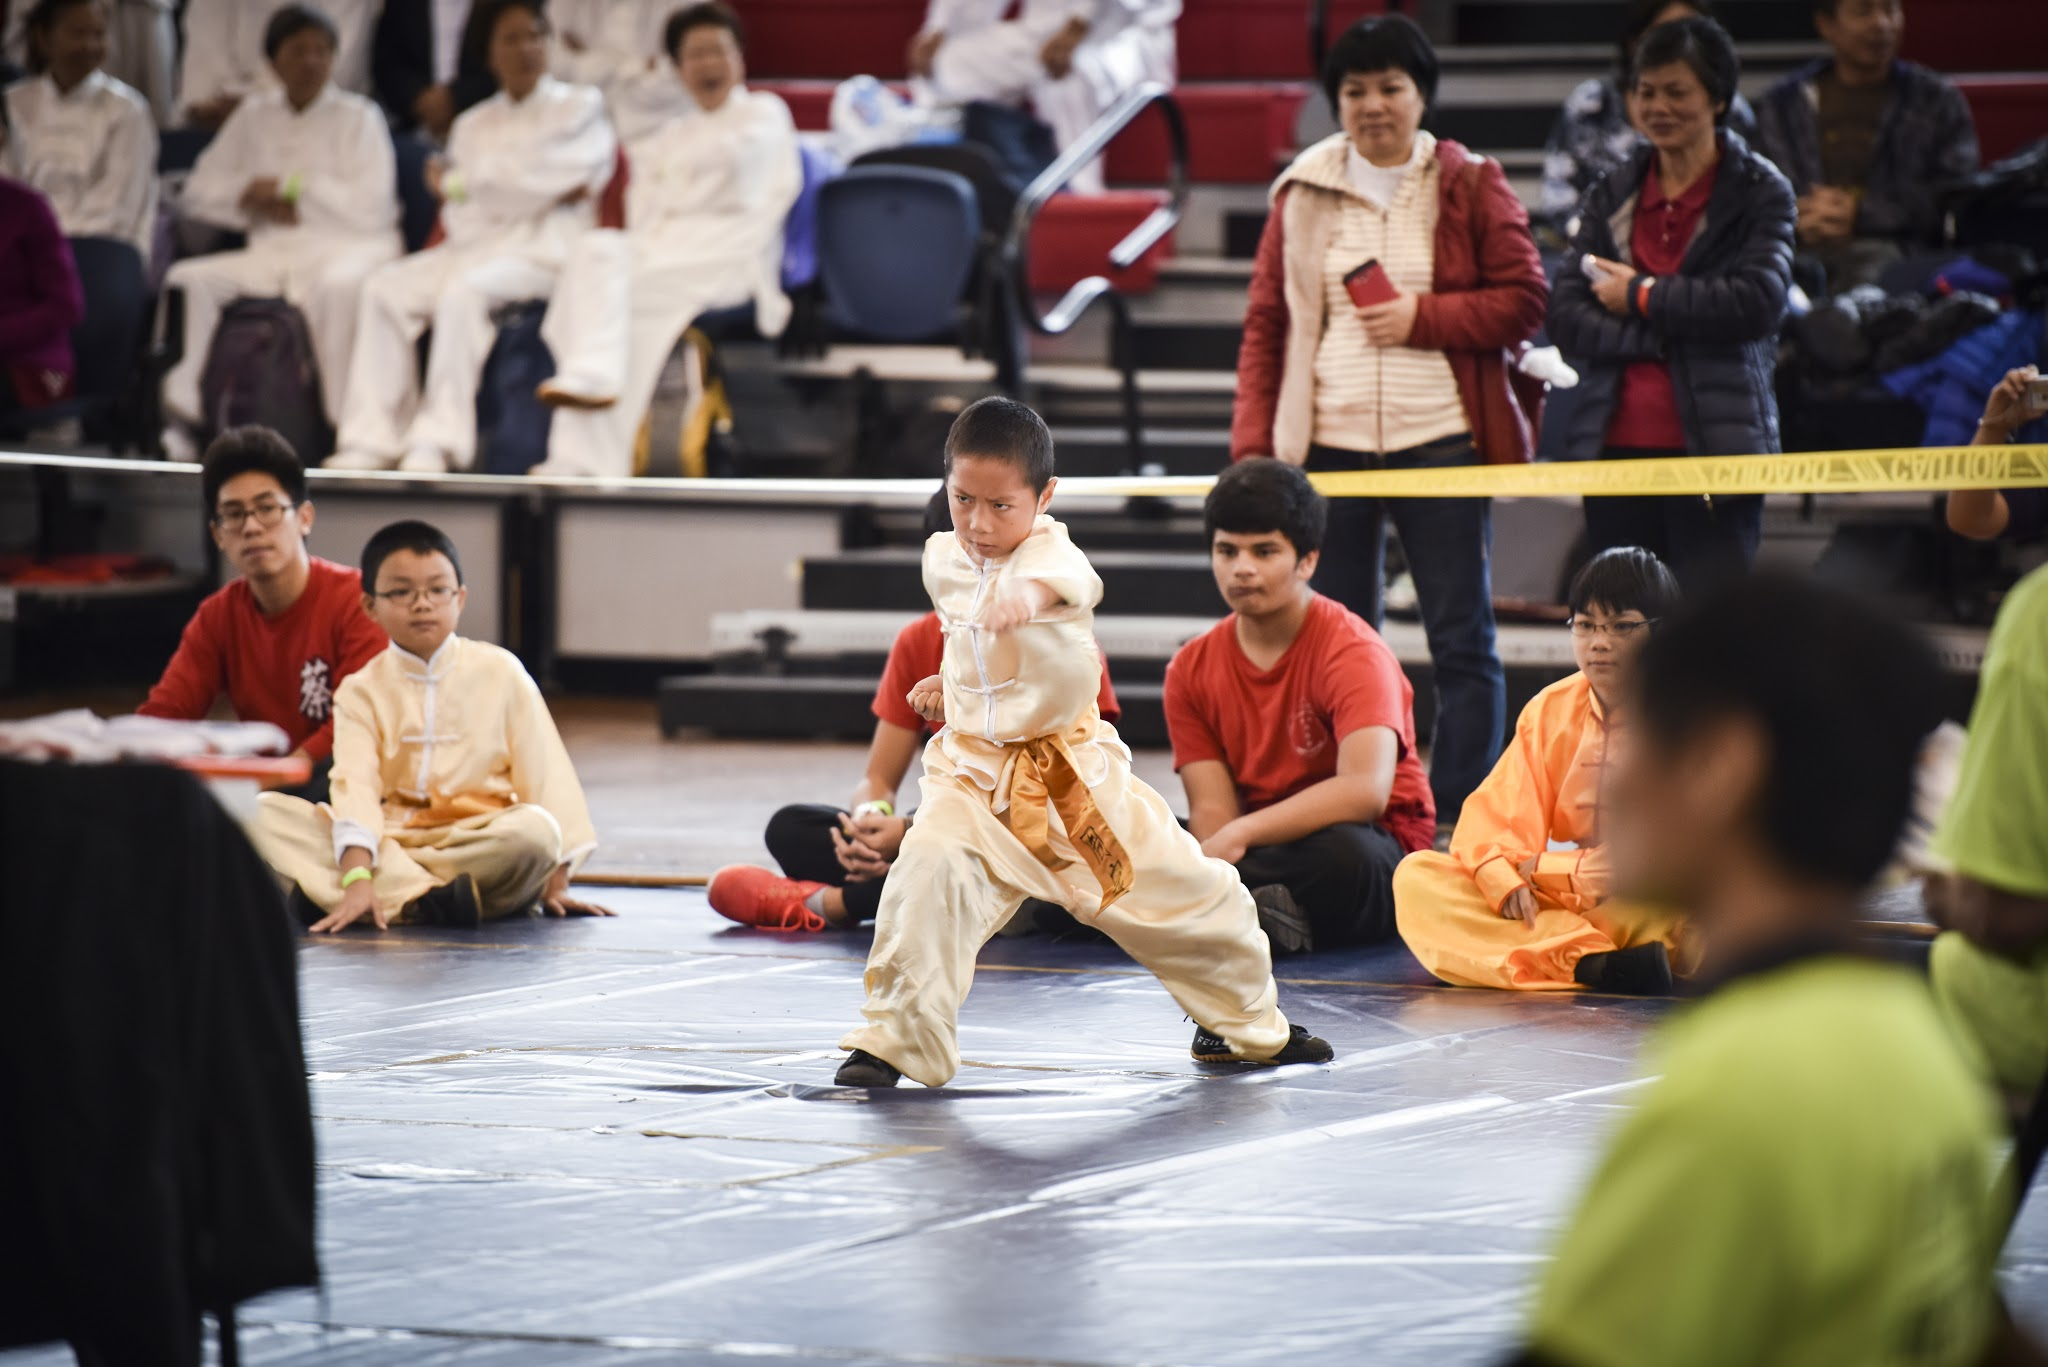 Youth competitor performing Southern Kung Fu at the US Open Martial Arts Championship, organized by the WFMAF.